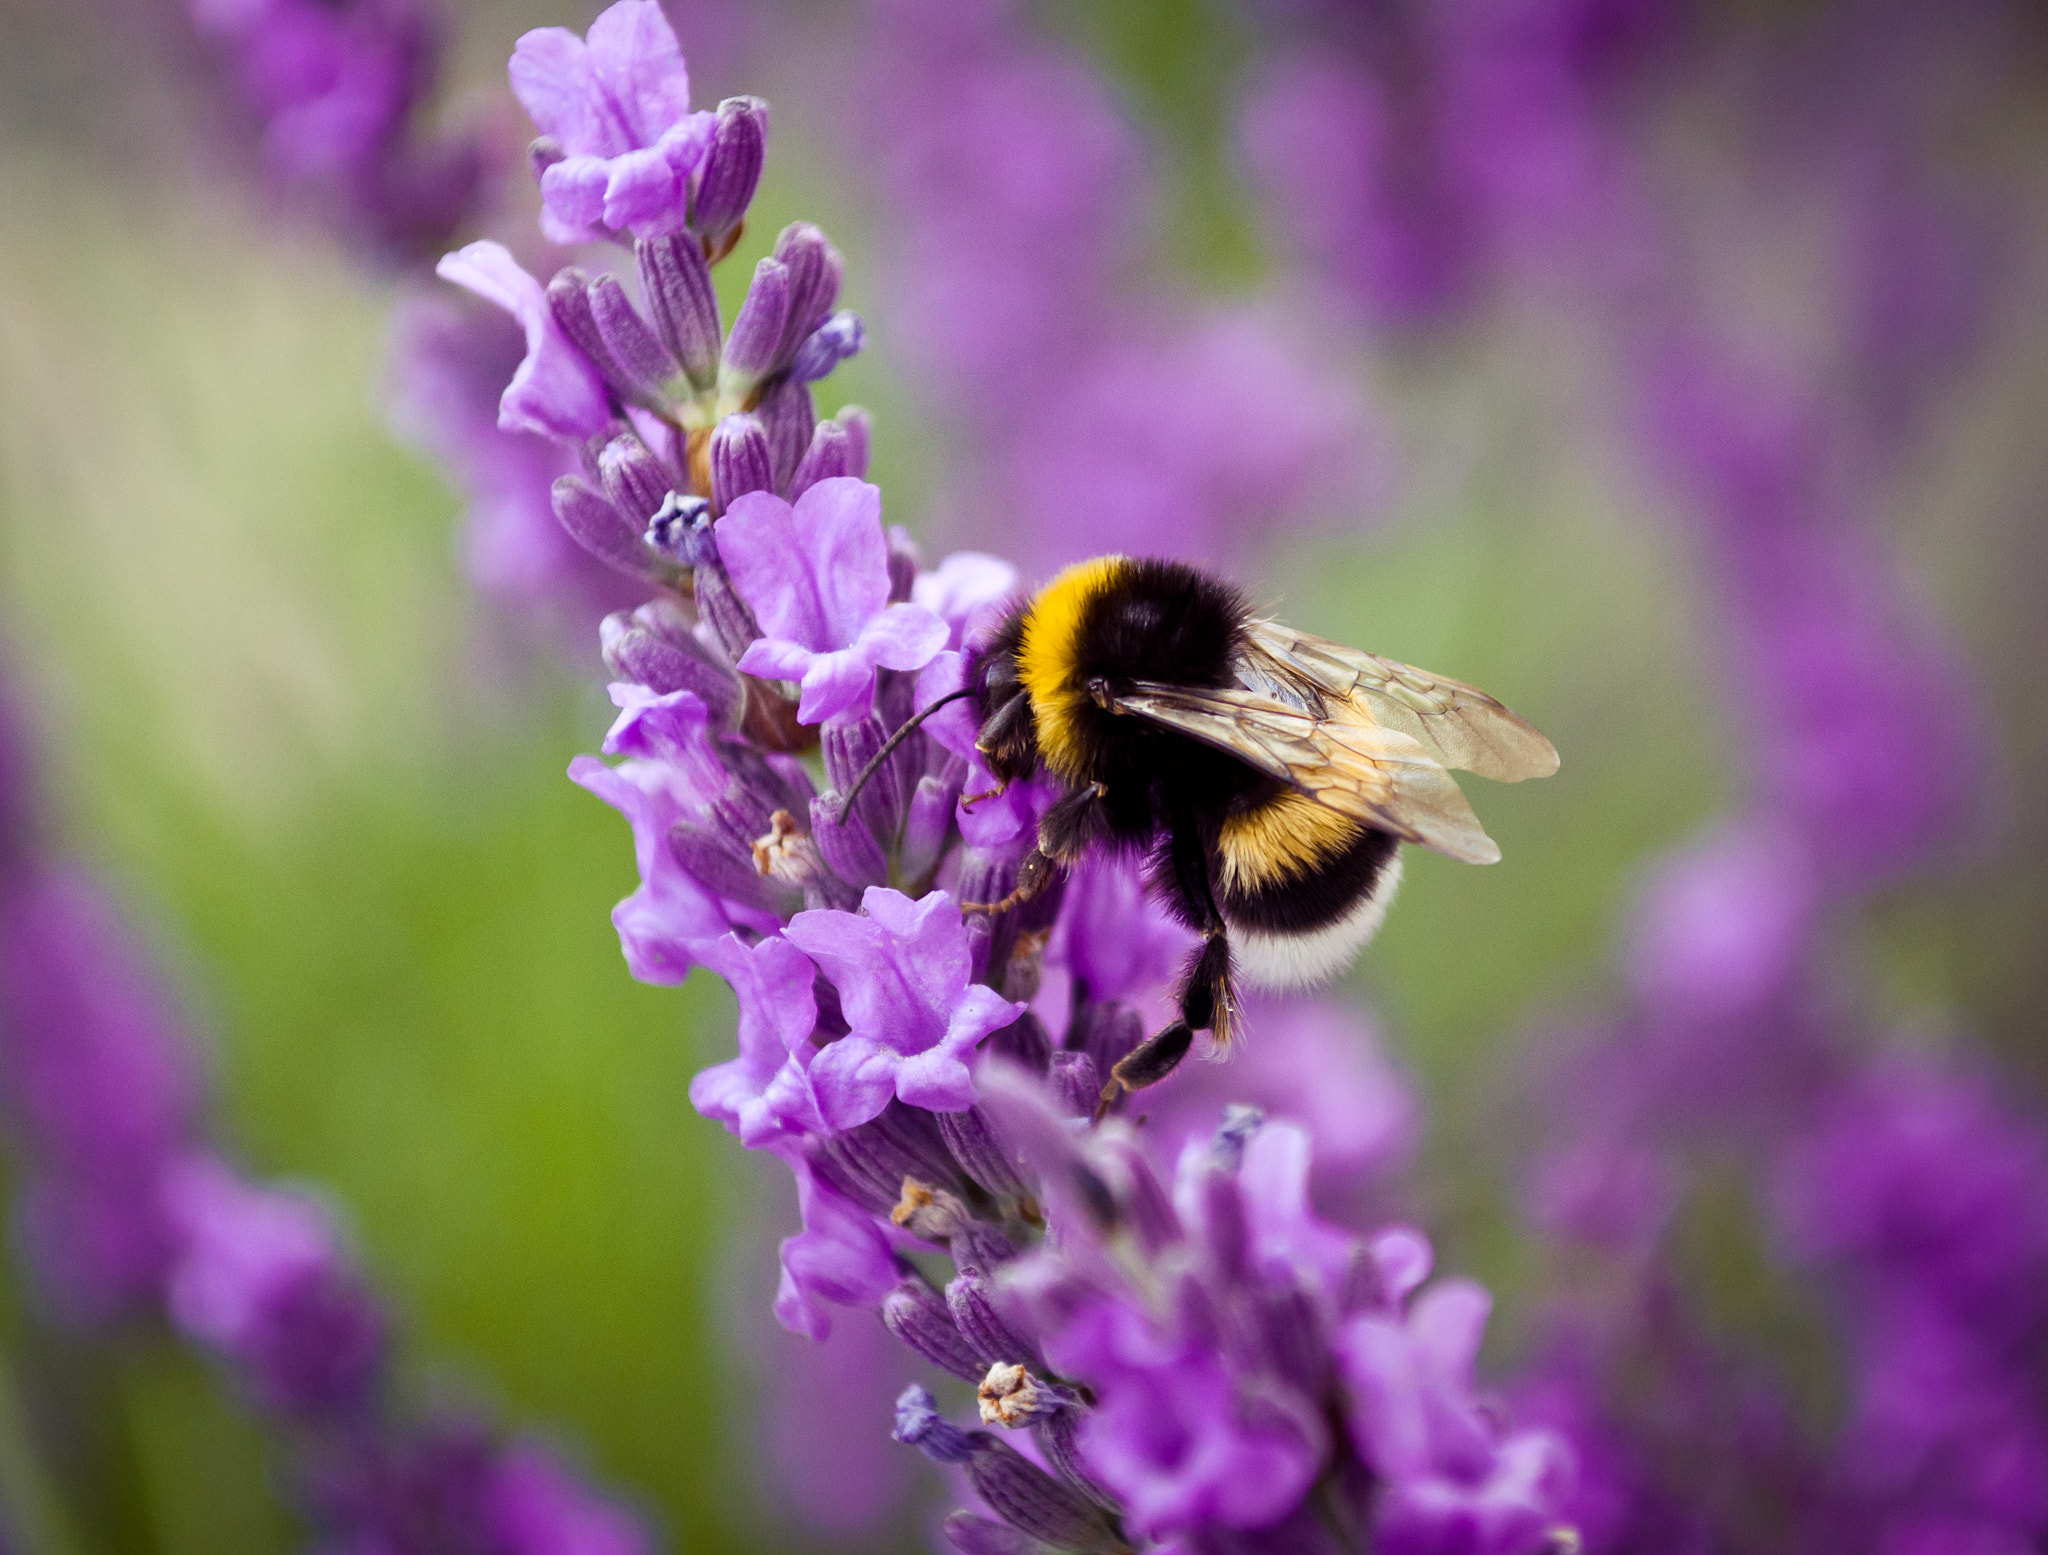 Photograph Lavender & humble-bee by Glafira Kushnir on 500px